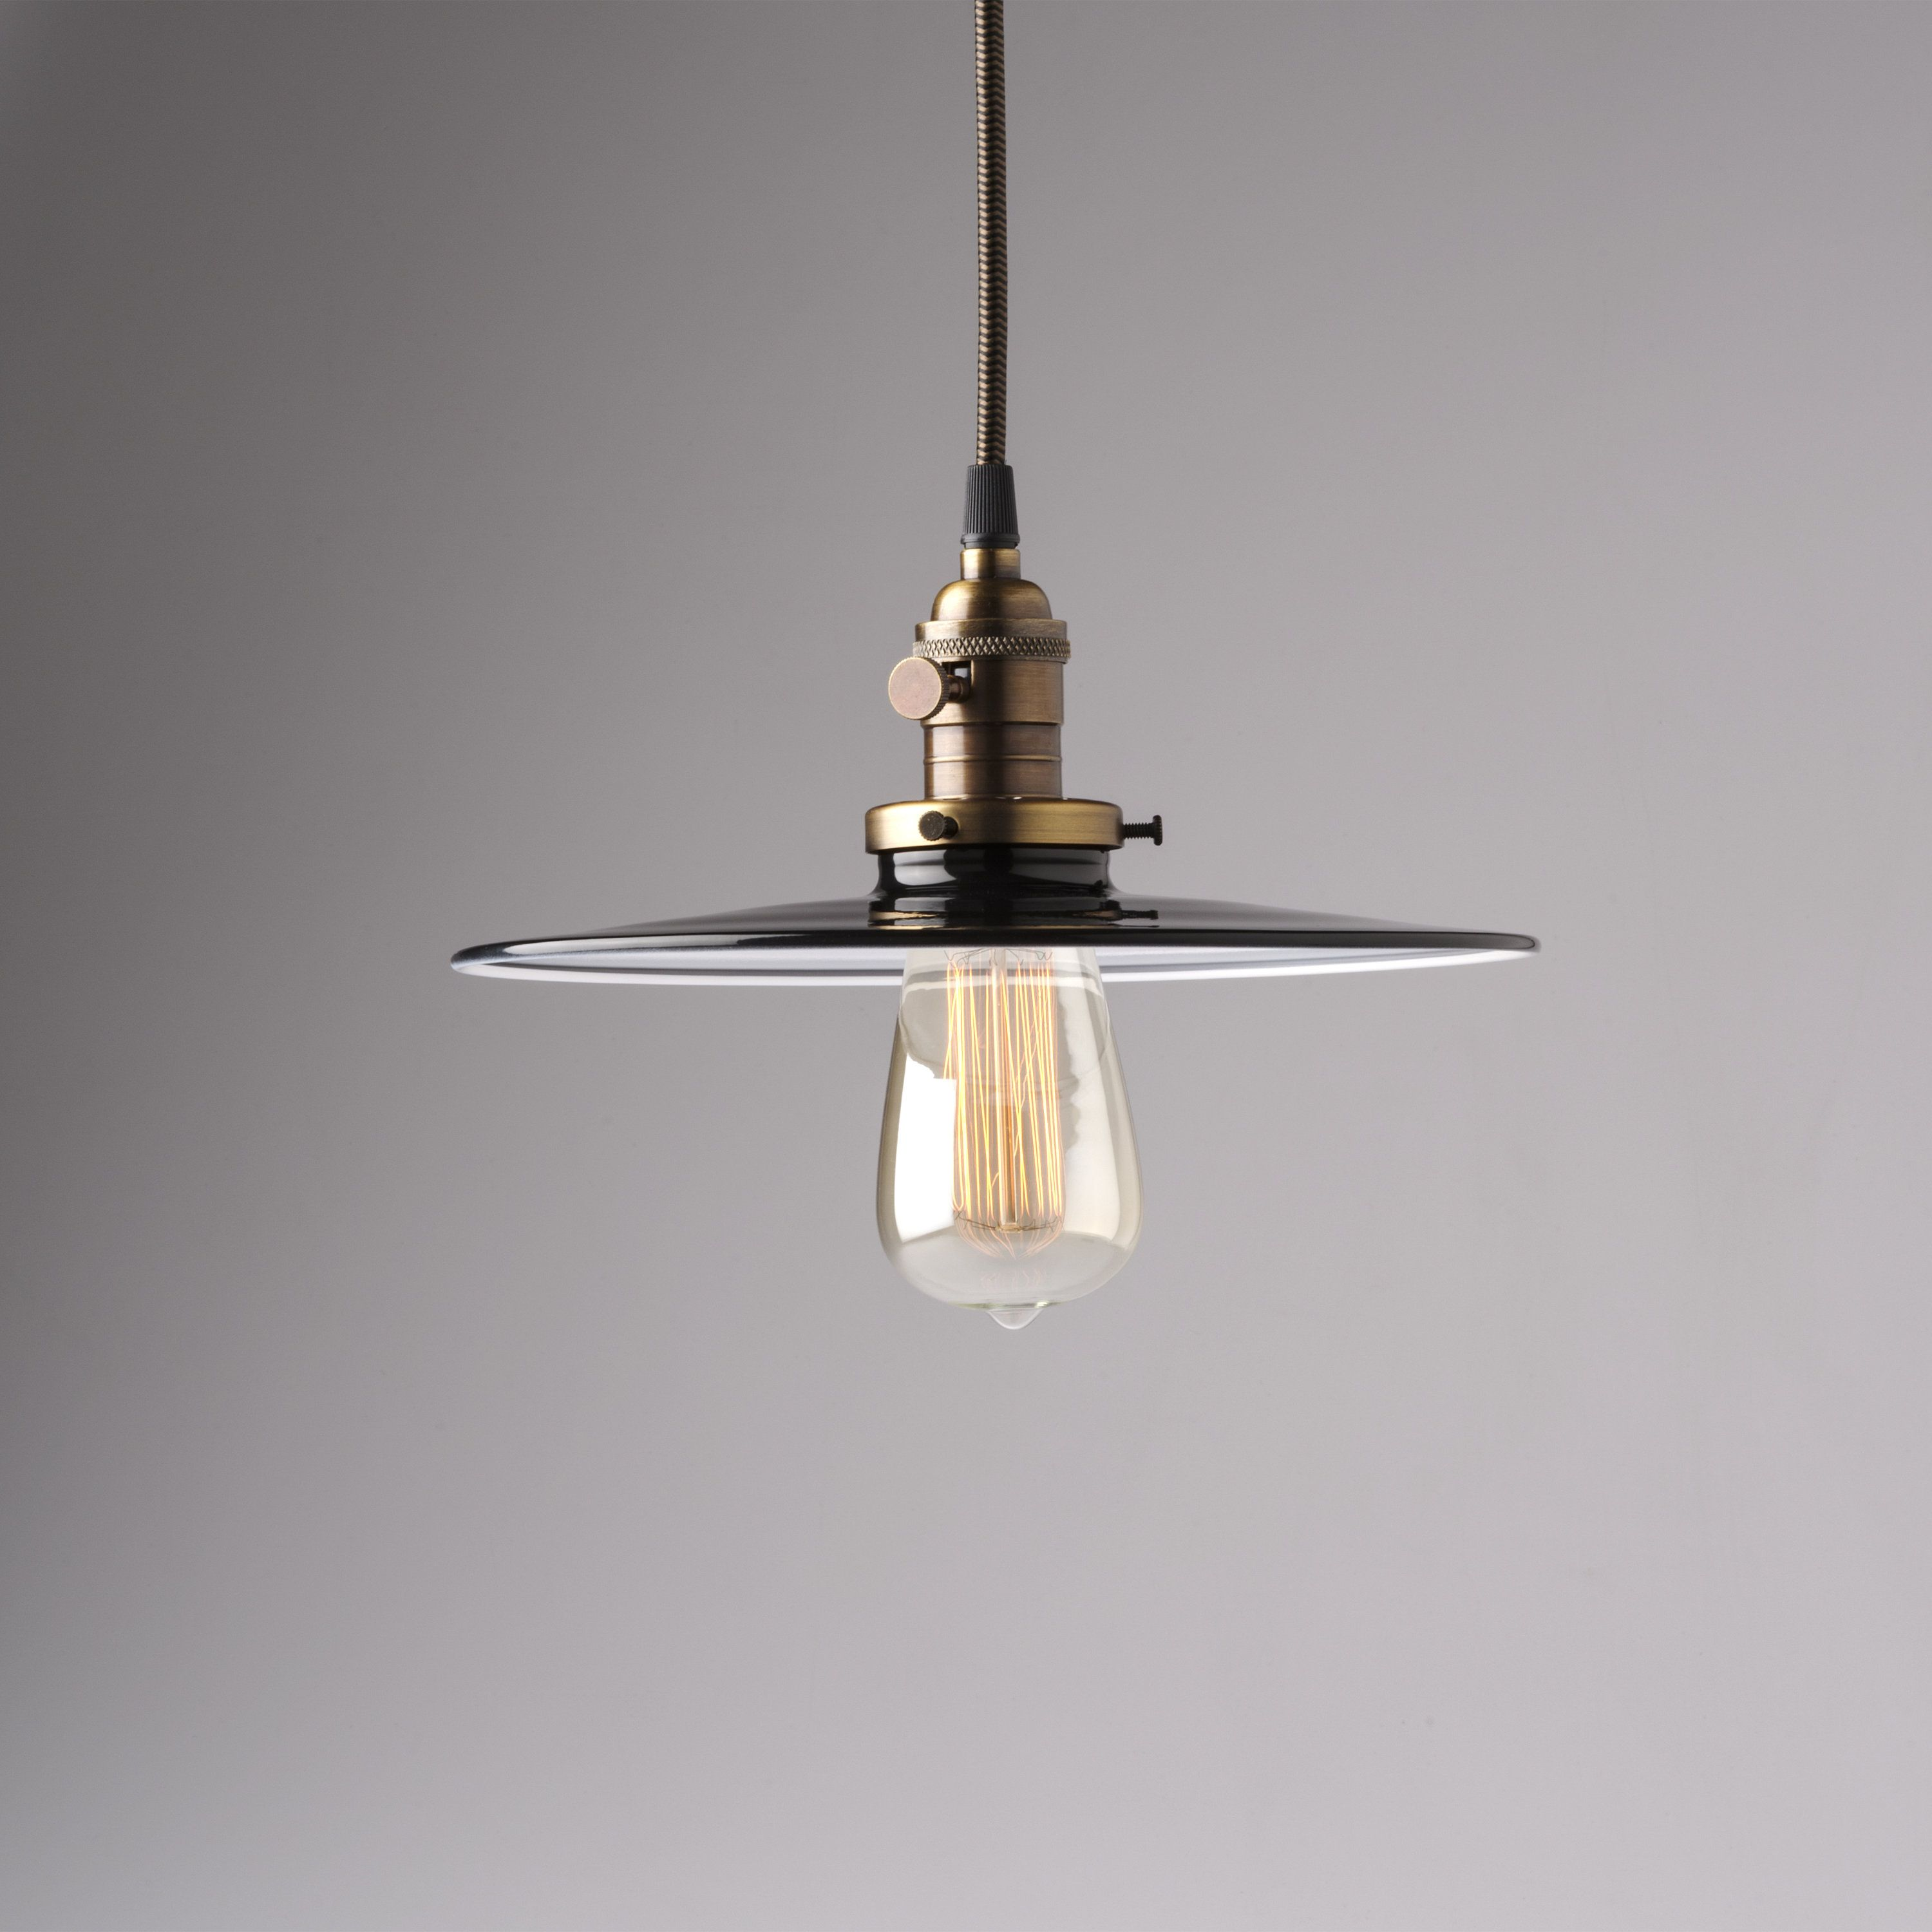 10 Industrial Pendant Light Fixture With Black Flat Metal Shade